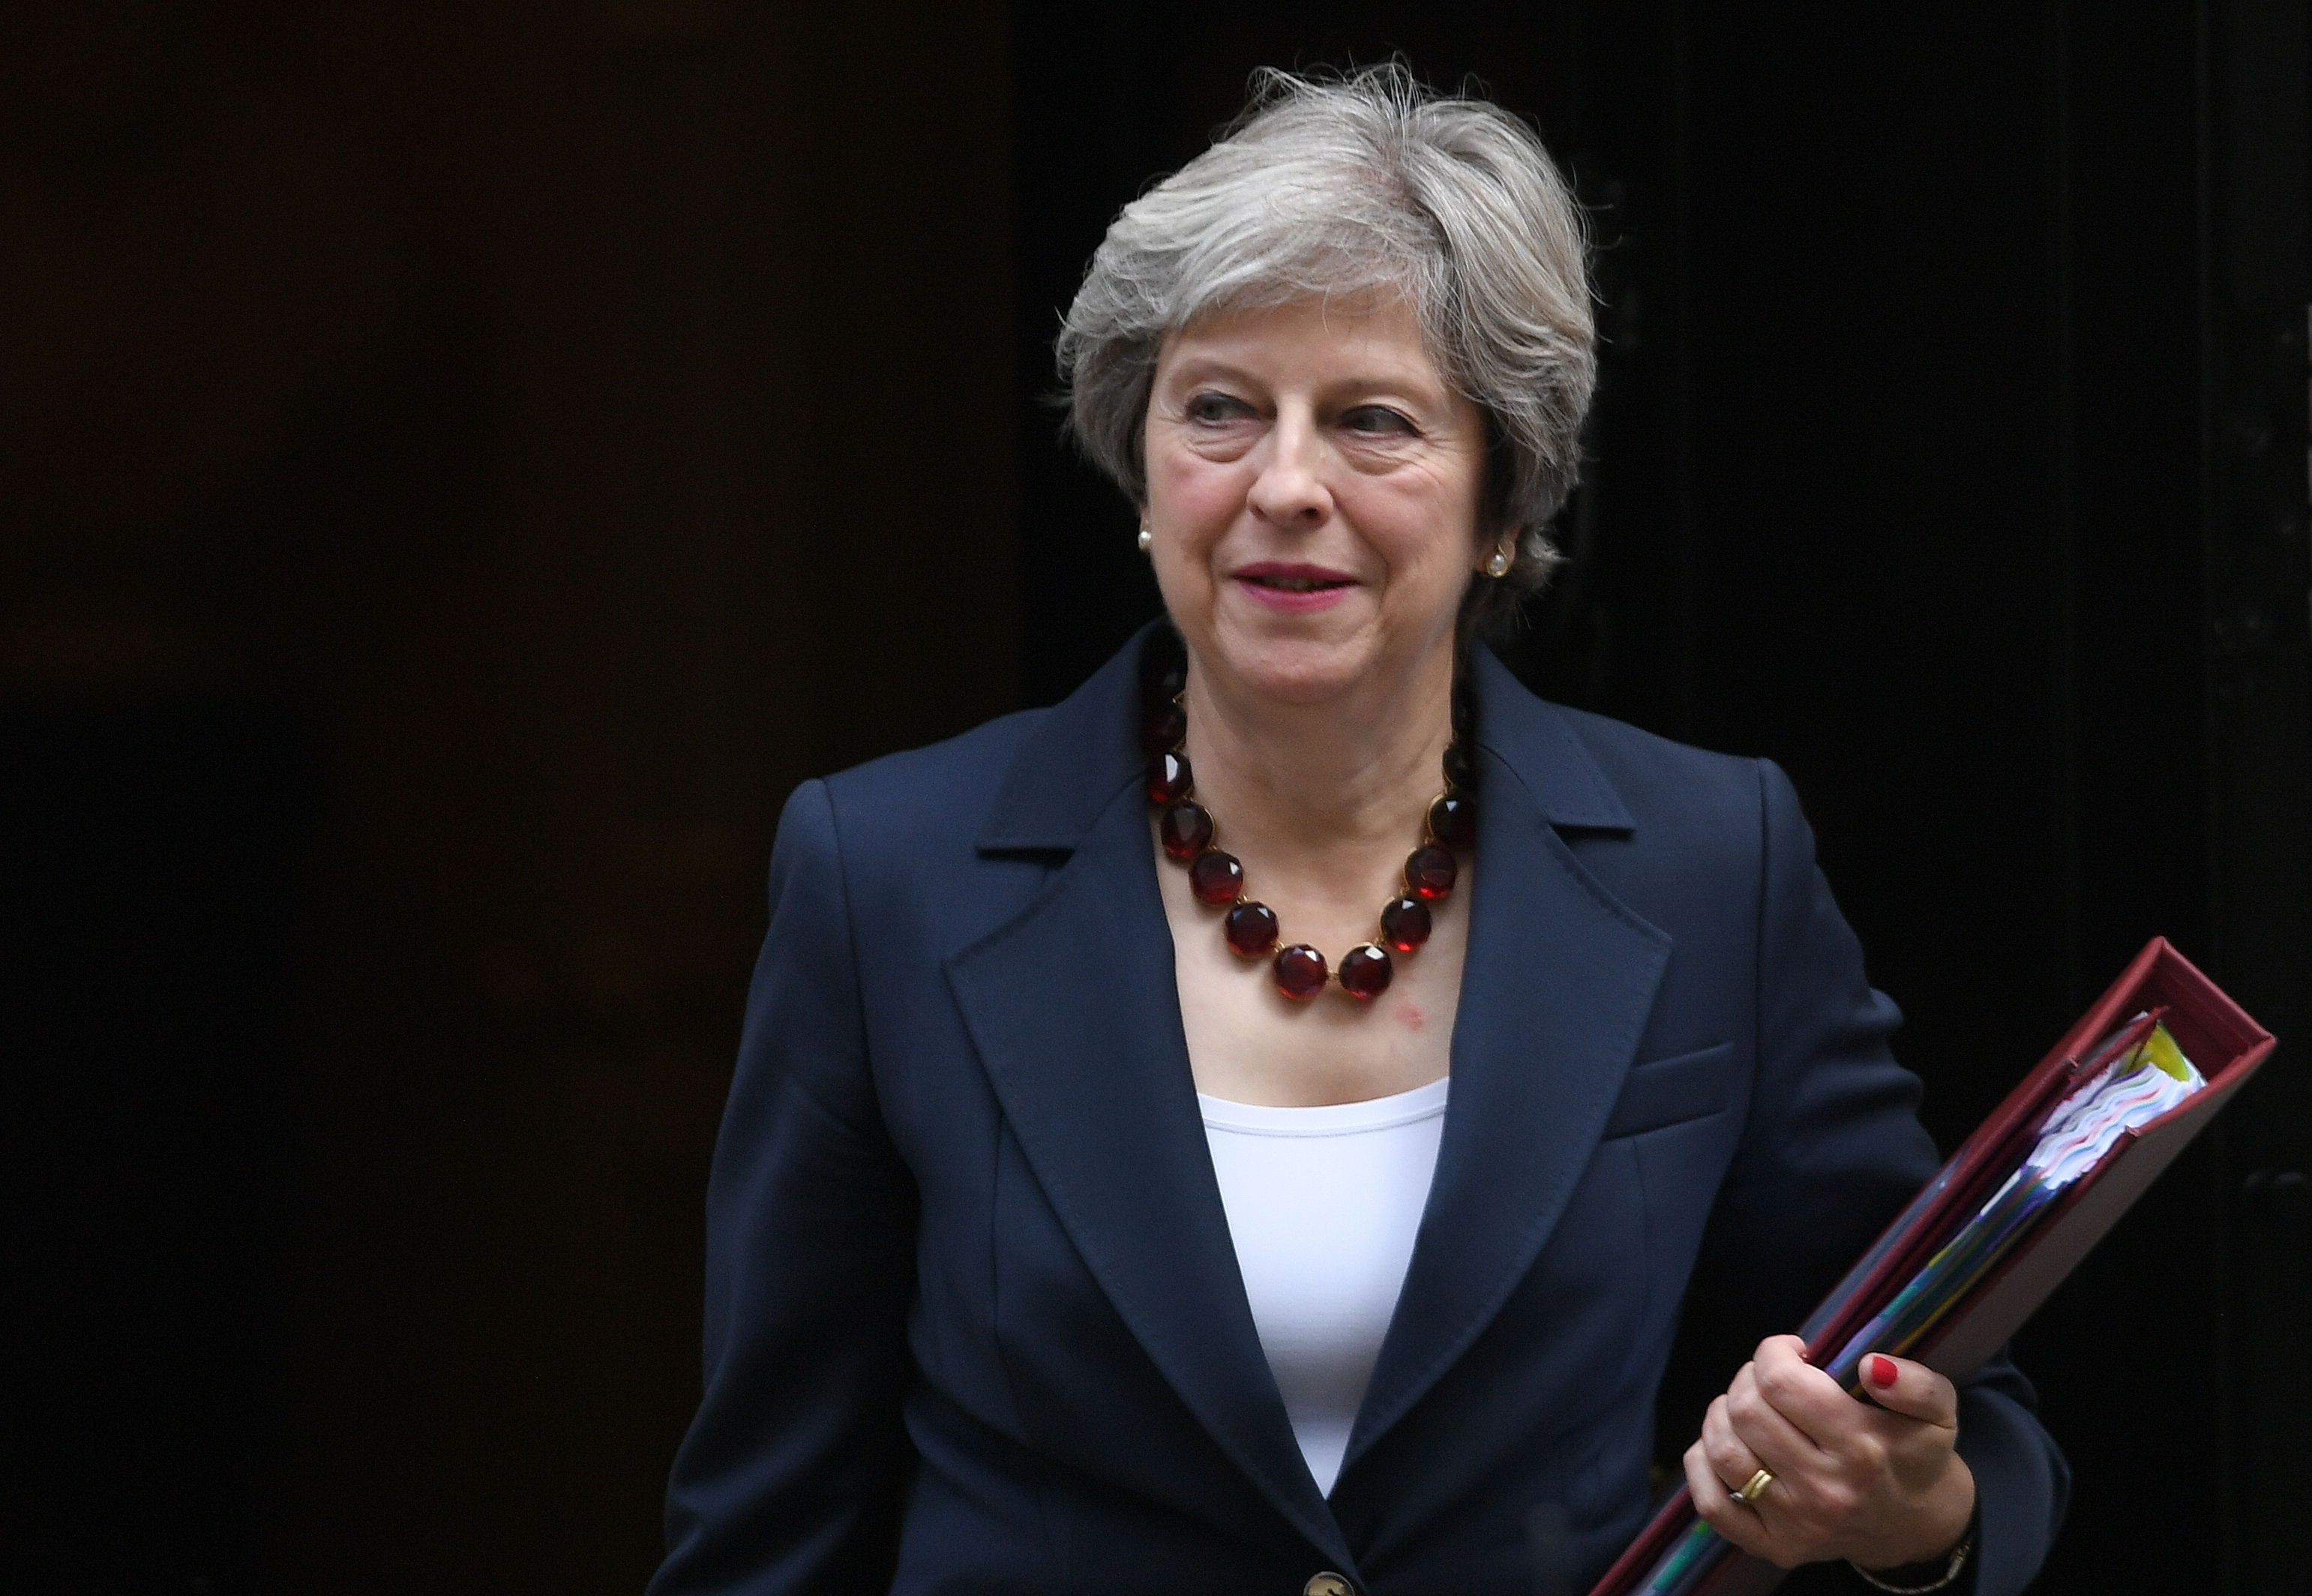 Theresa May has pledged to make mental health a priority.